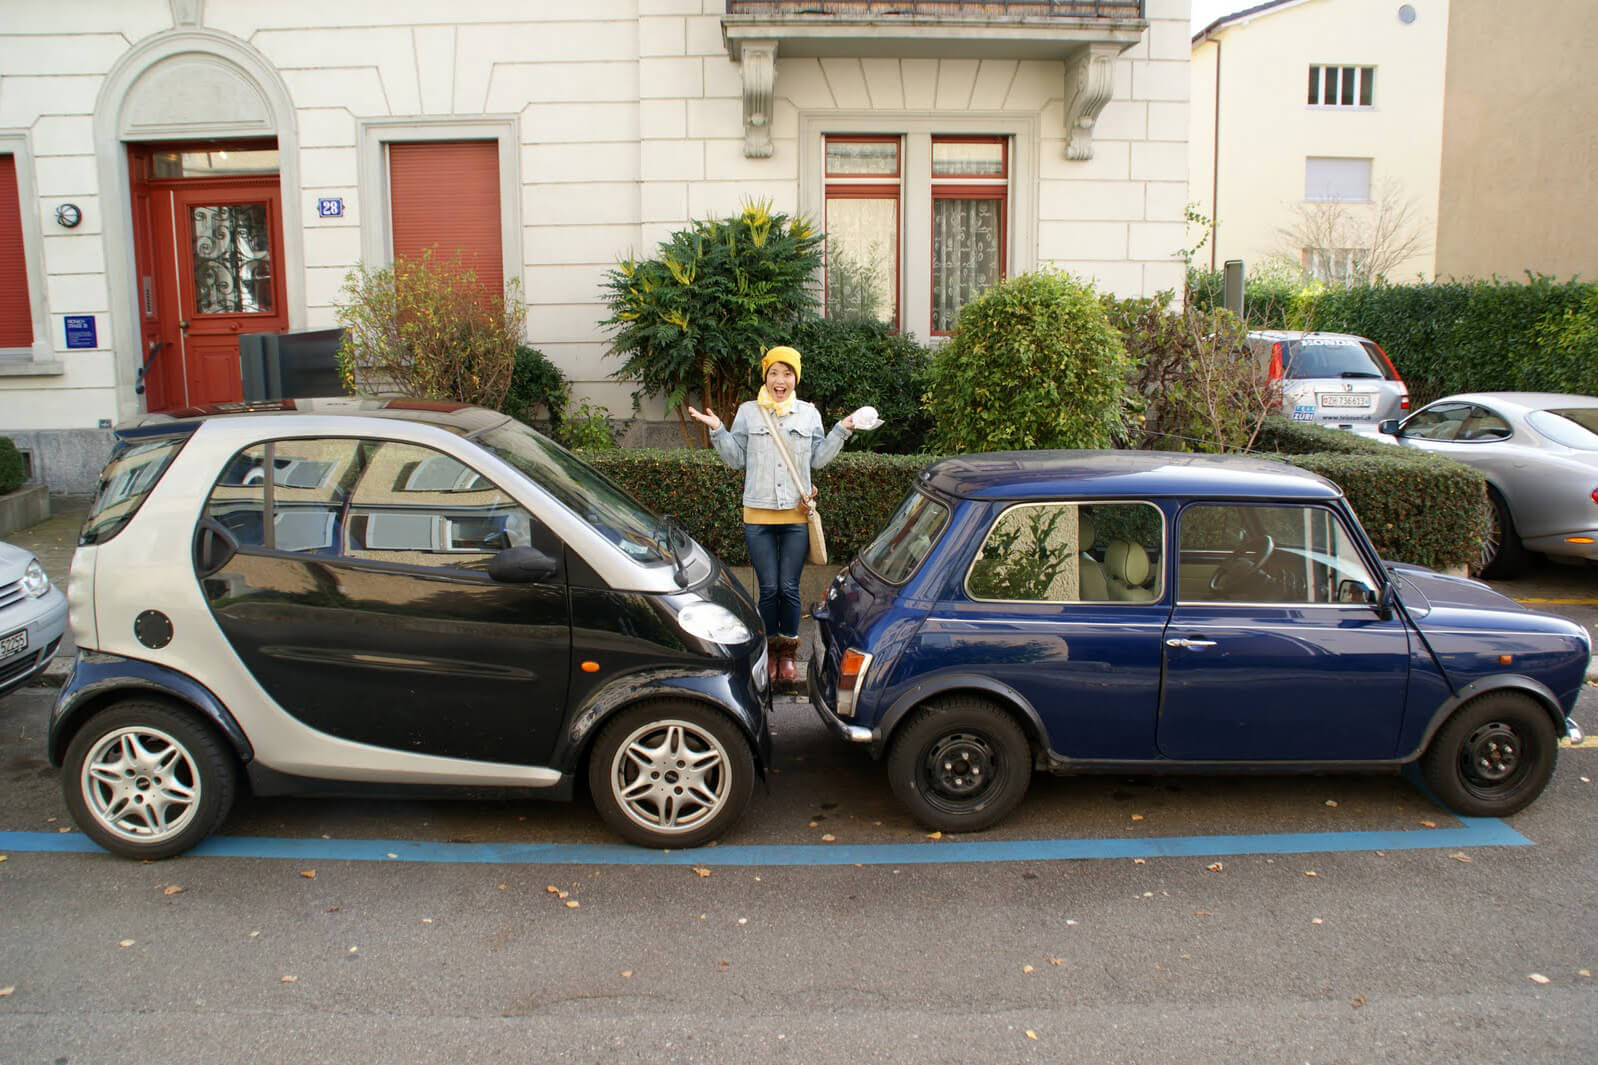 Two small cars parked bumper to bumper in Switzerland